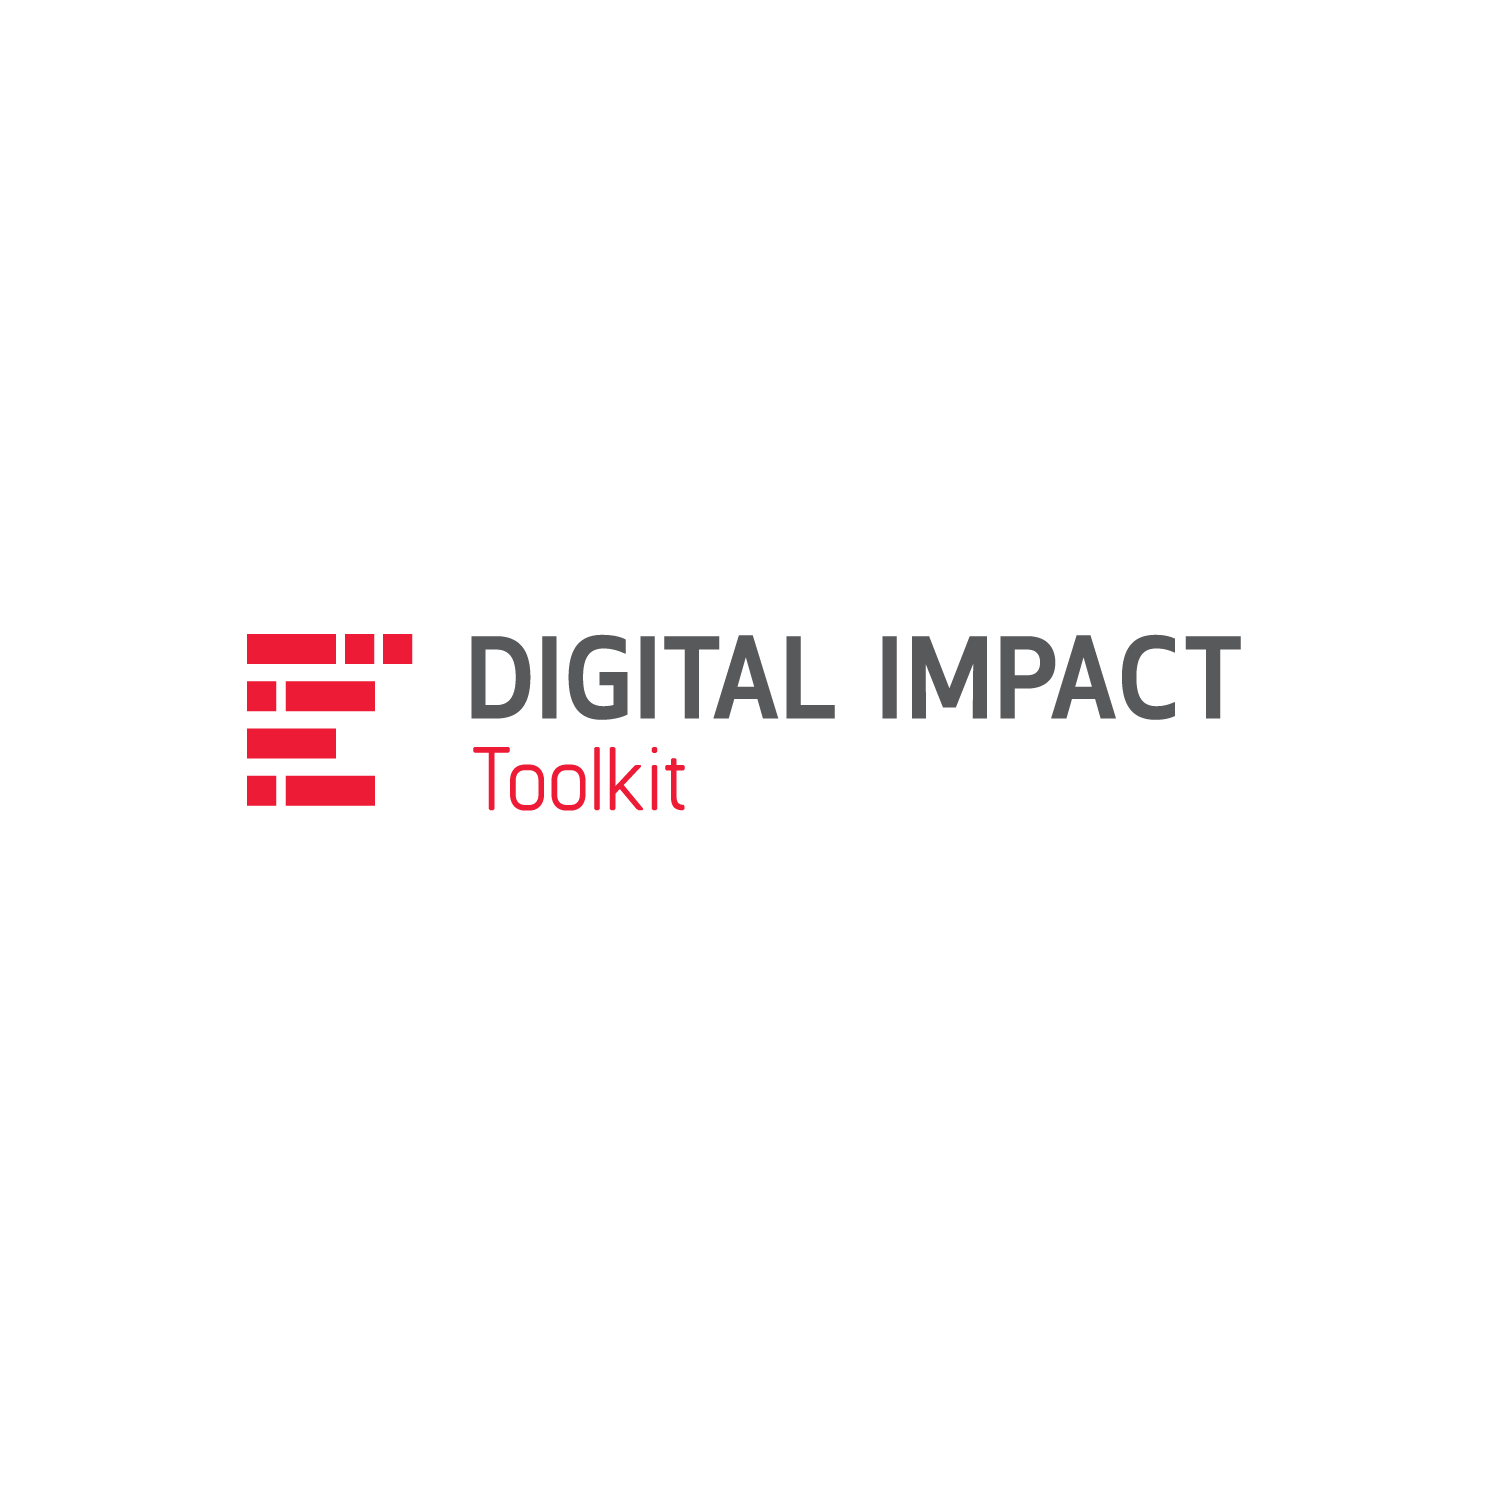 Digital Impact Toolkit